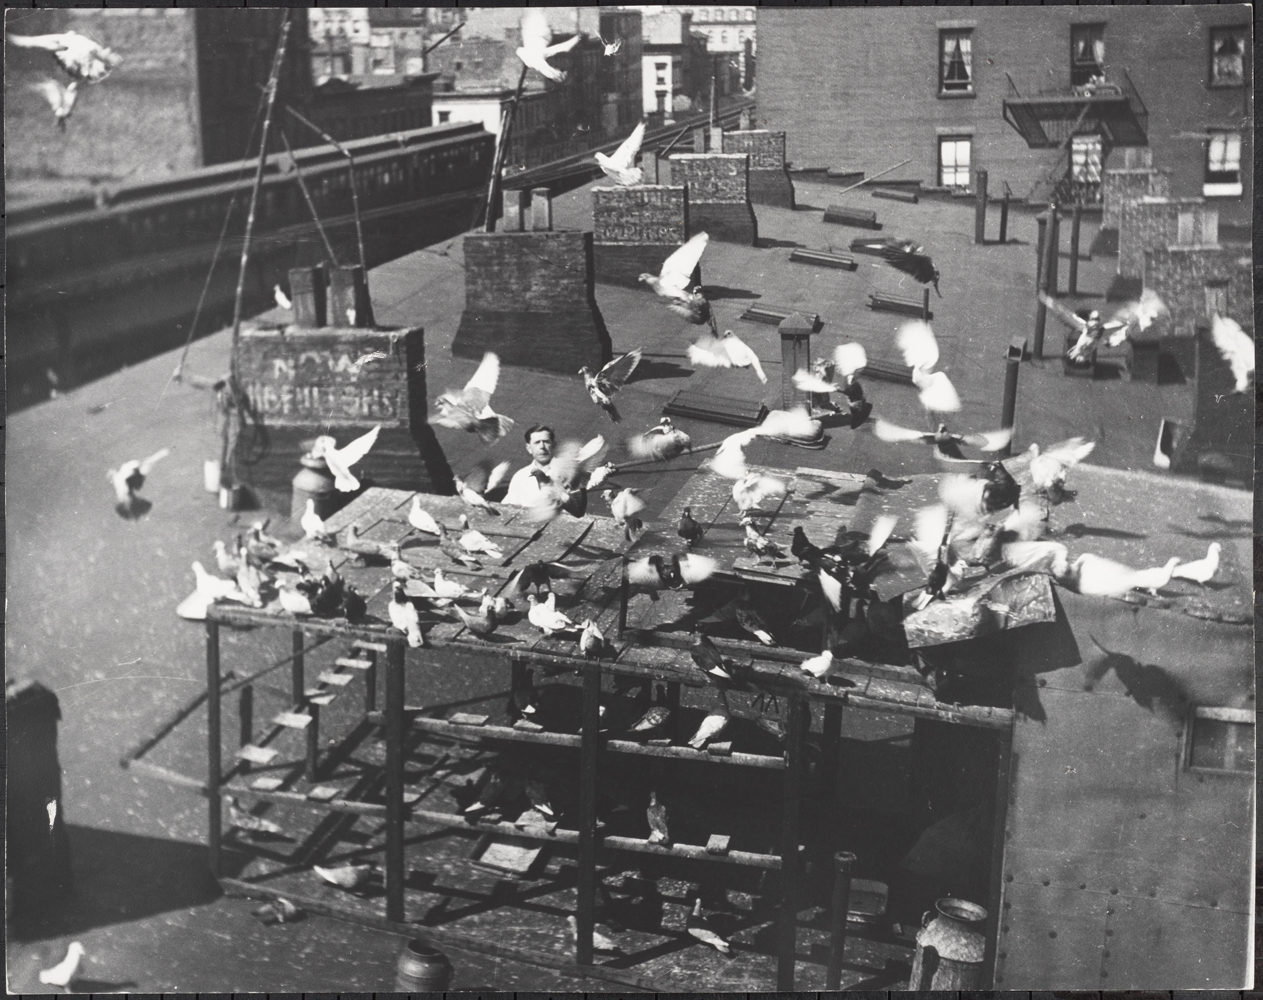 Roy Perry. Man on Roof Tending Pigeon Brood, Third Avenue, ca 1940. Museum of the City of New York. 80.102.178